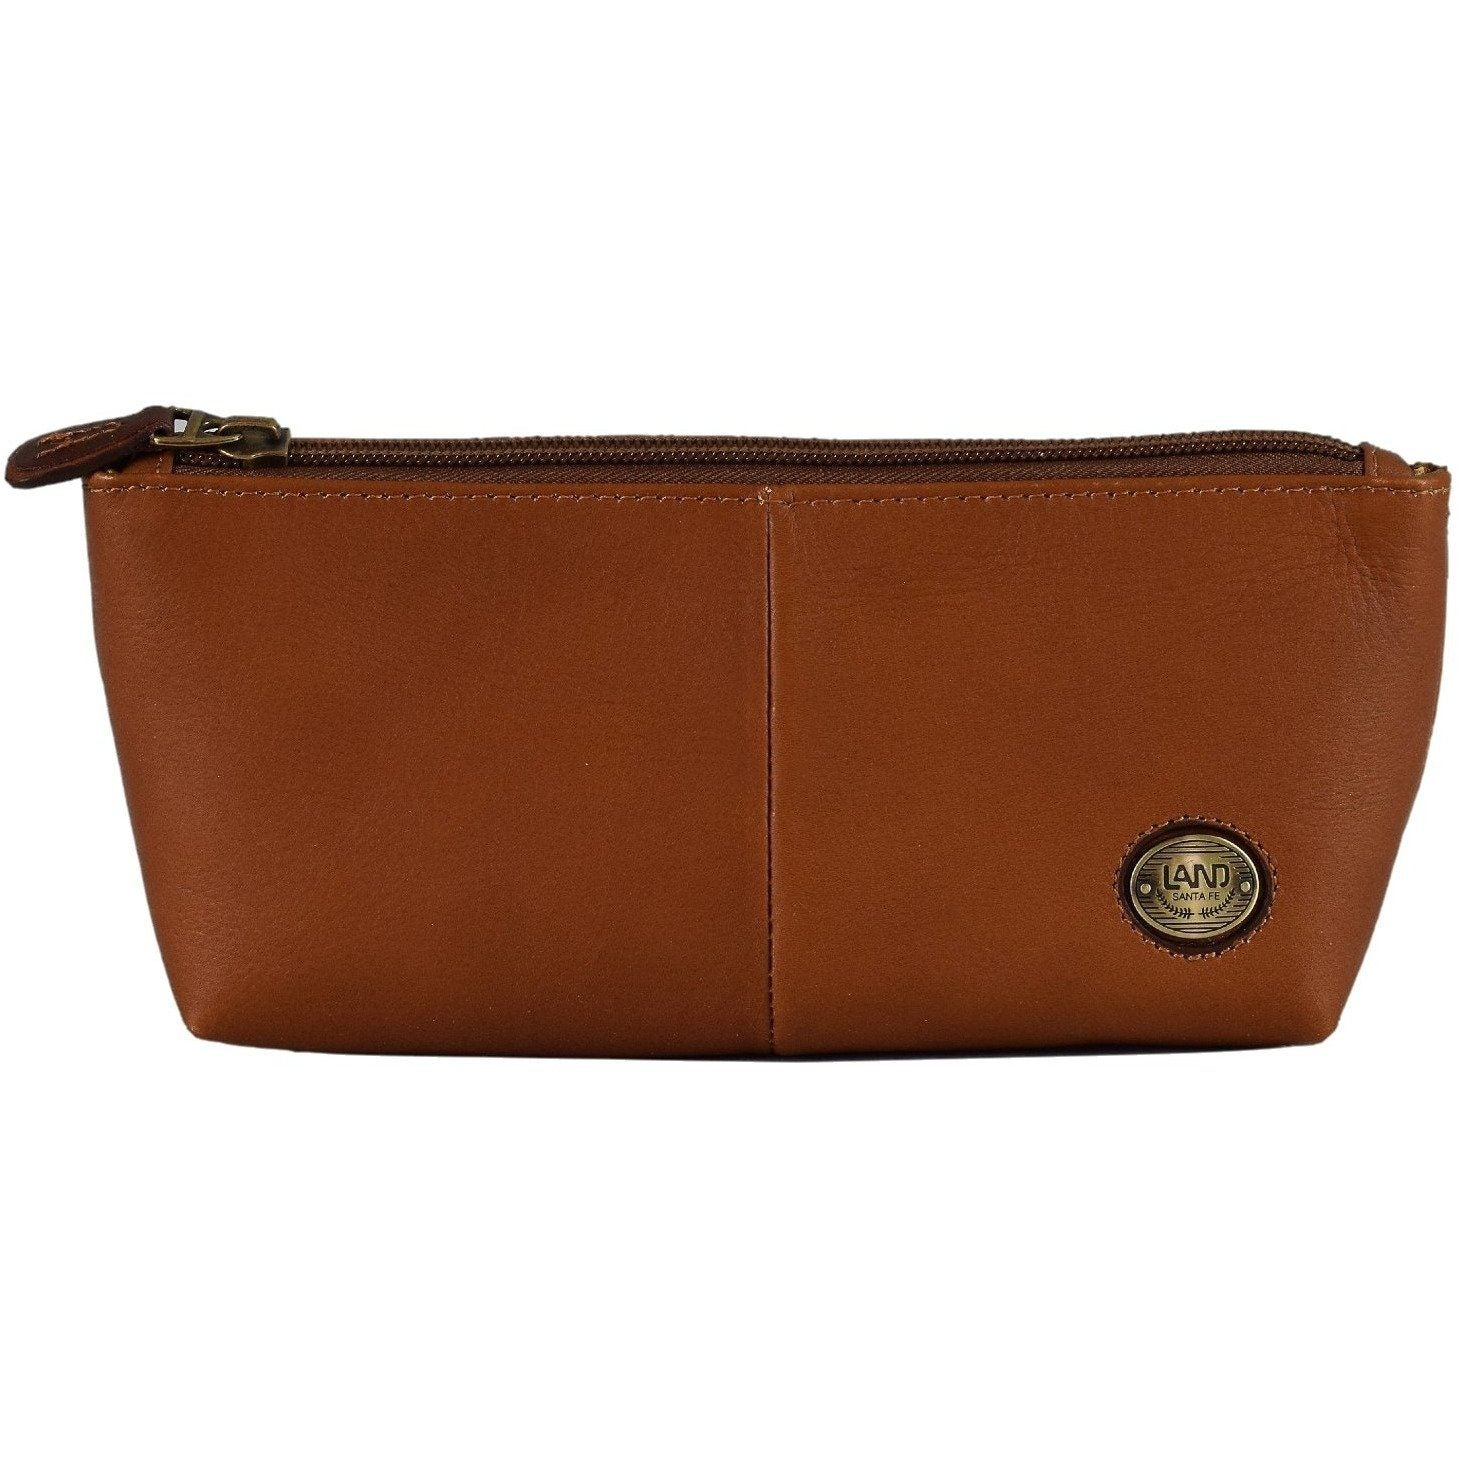 Santa Fe Pencil Case, Pen Holder | LAND Leather